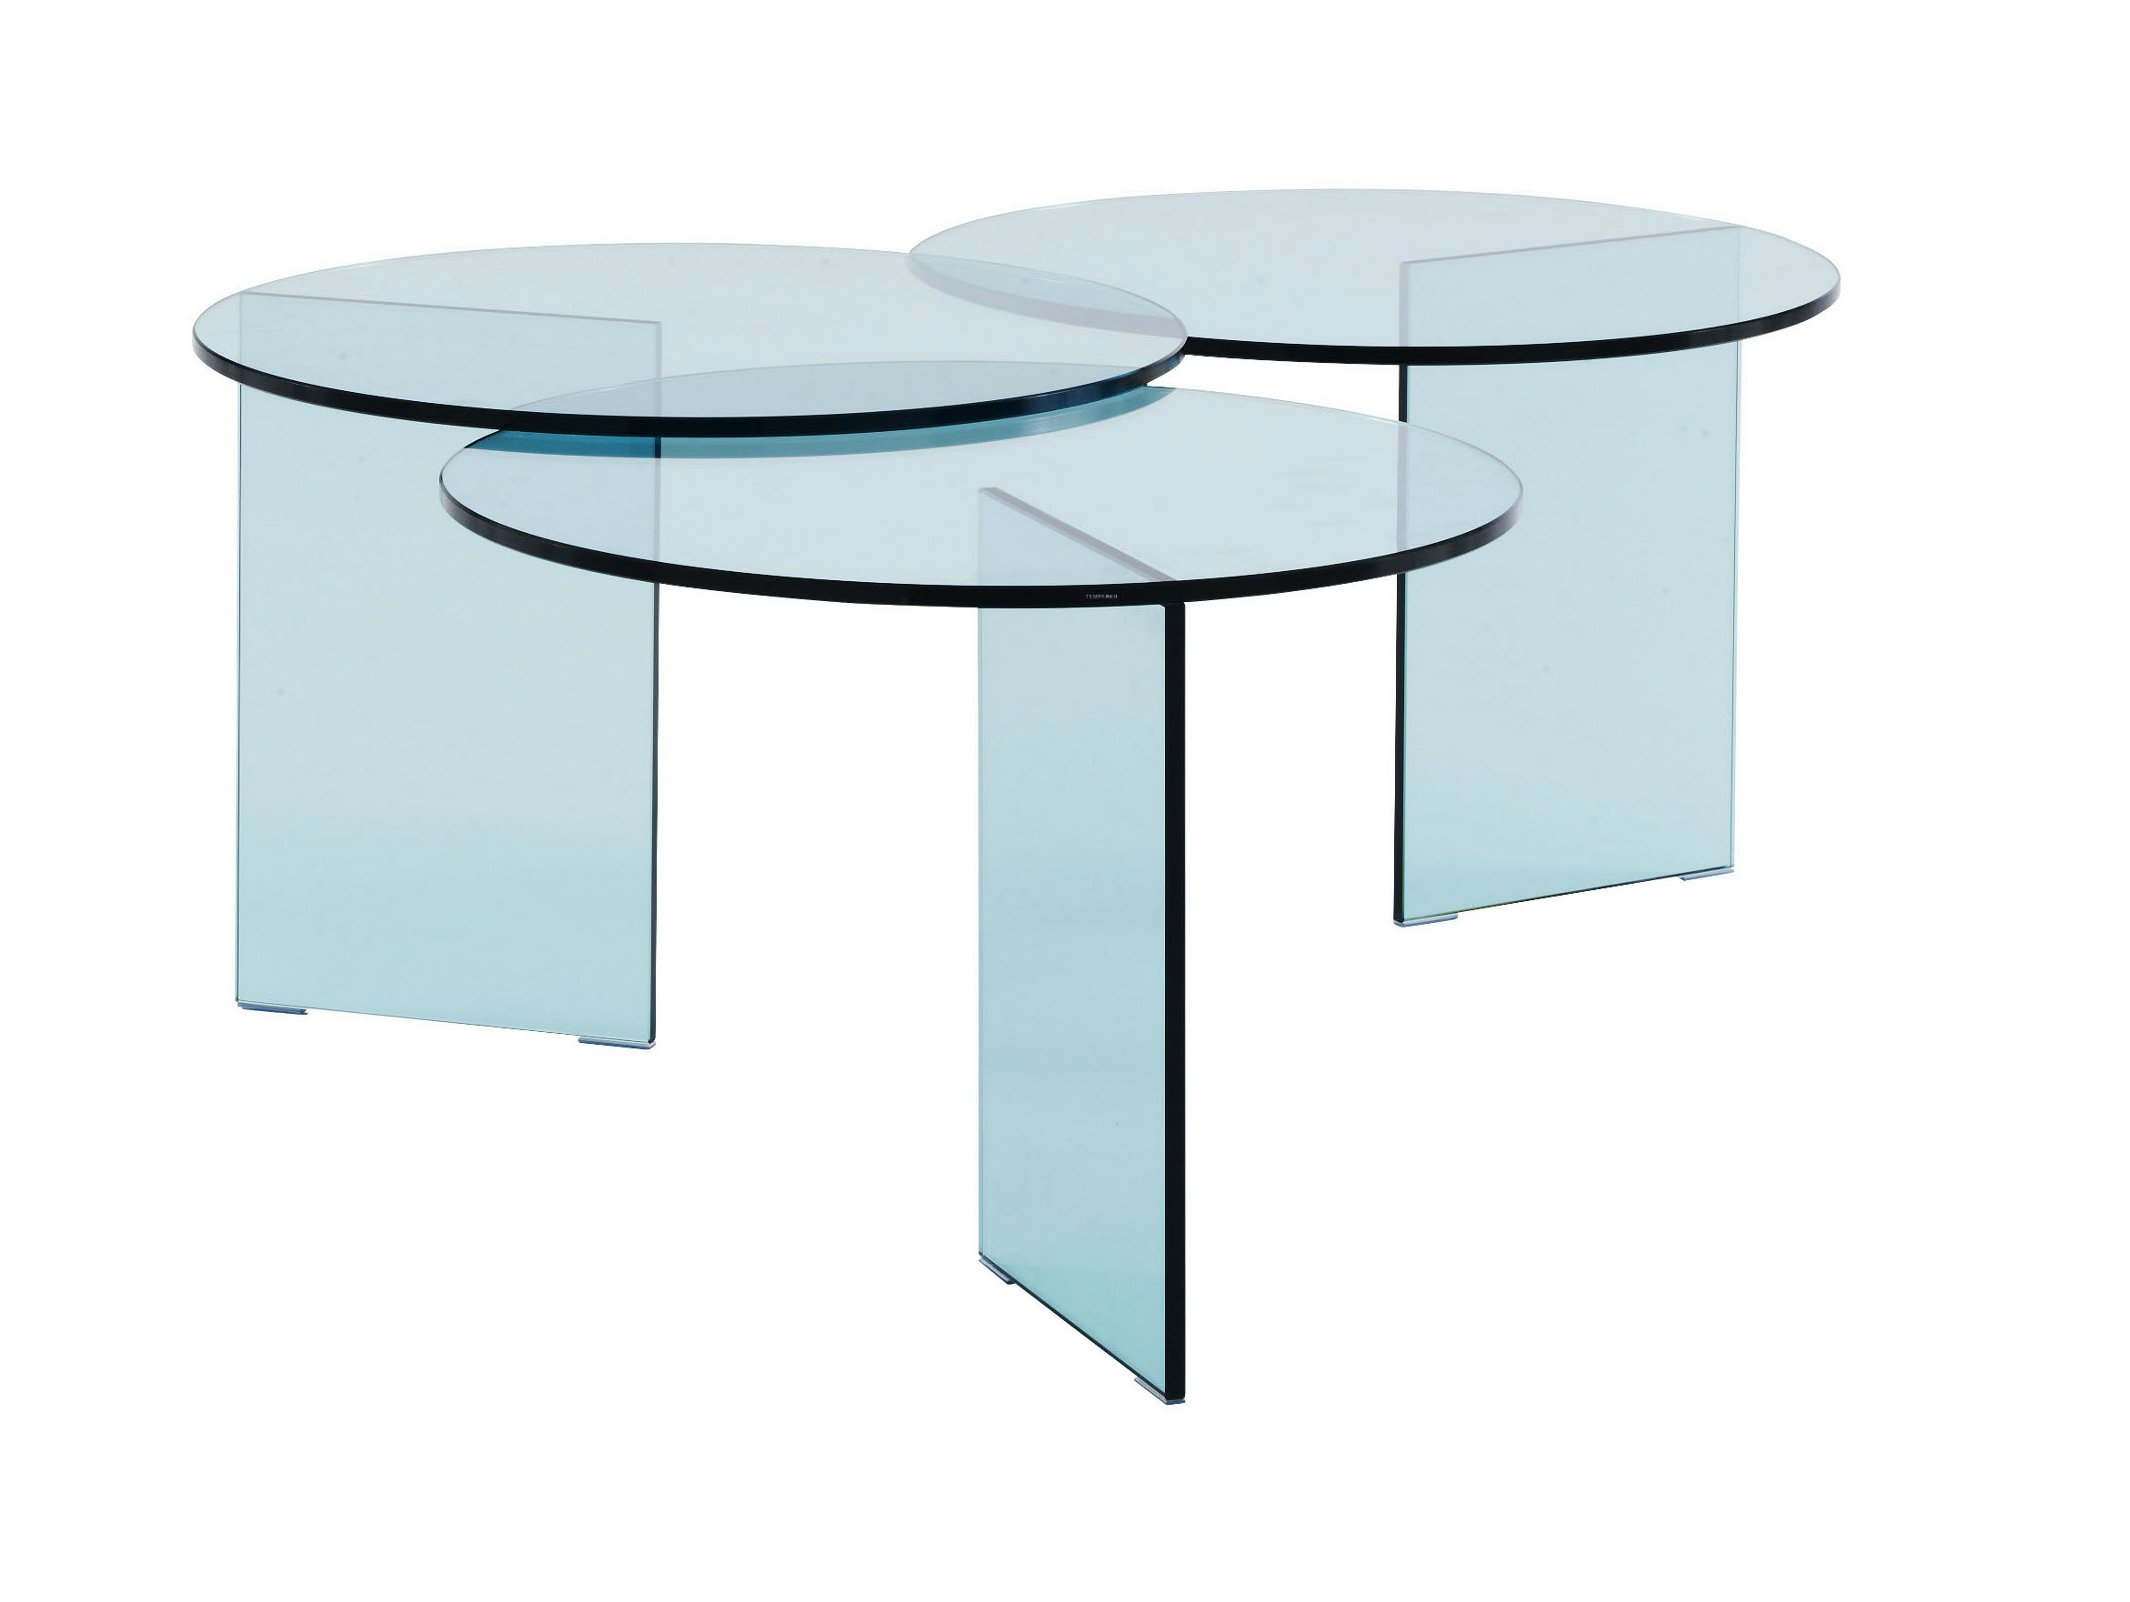 Pin lambda table ronde en verre design et cristalplant on pinterest - Table ronde en verre design ...